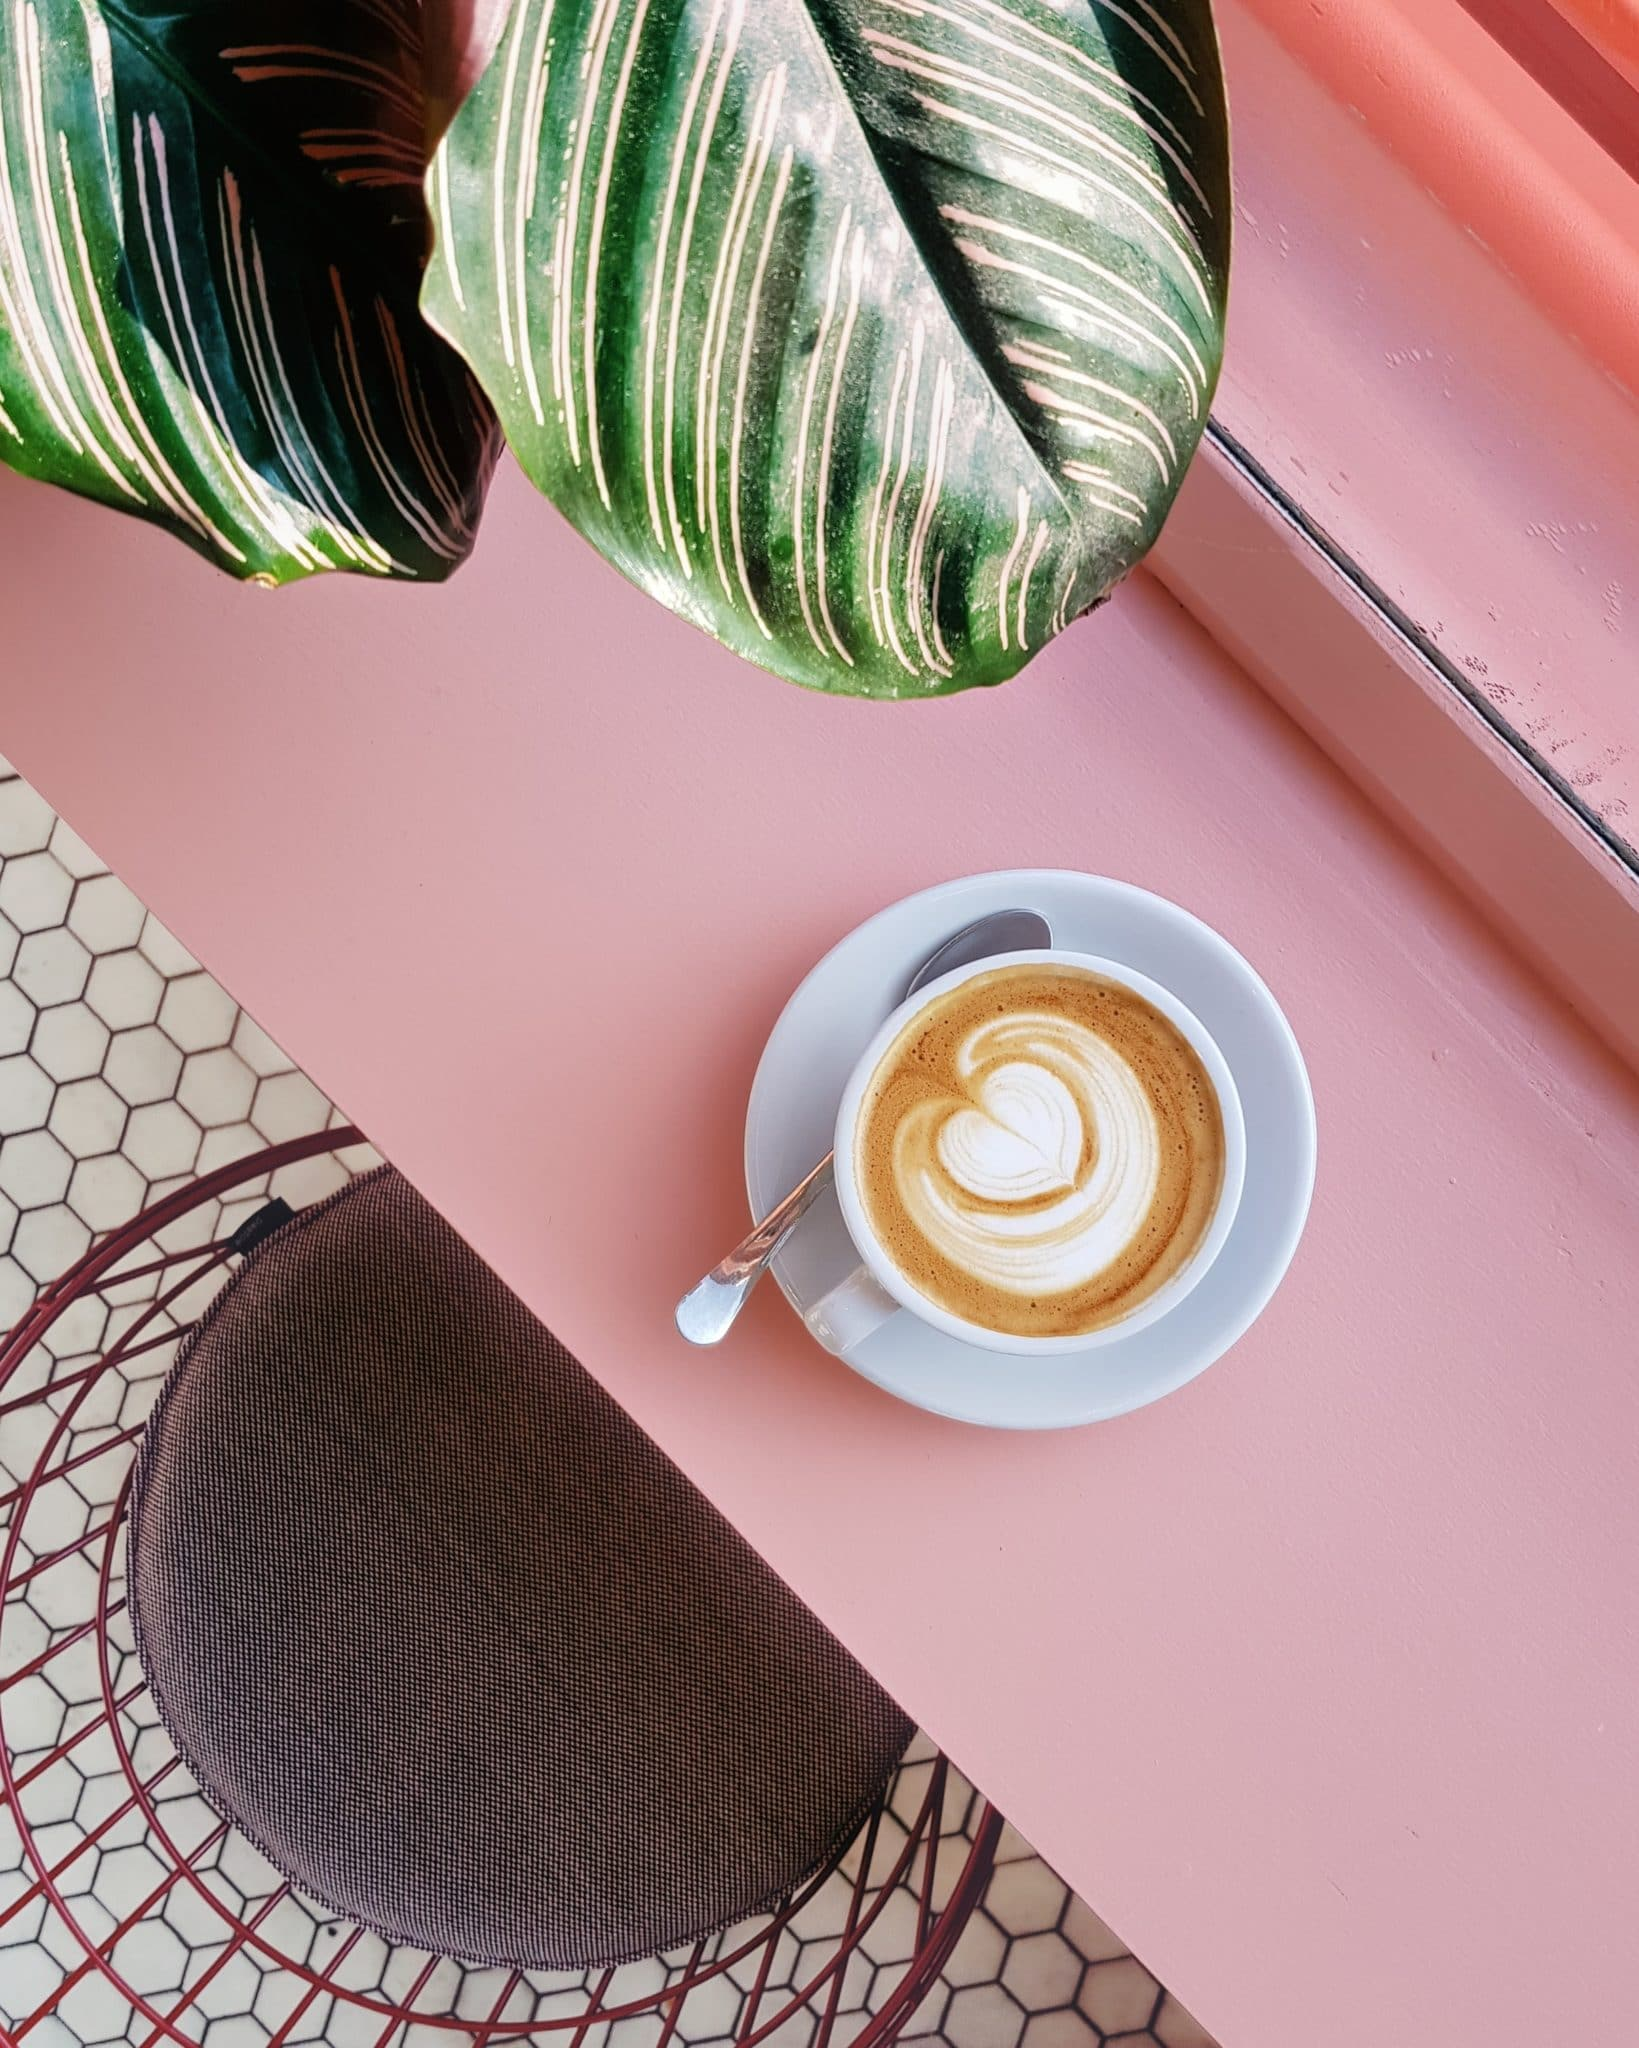 birds eye image of a small mug of coffee on a light pink table next to a grey chair with a green plant in the top left corner